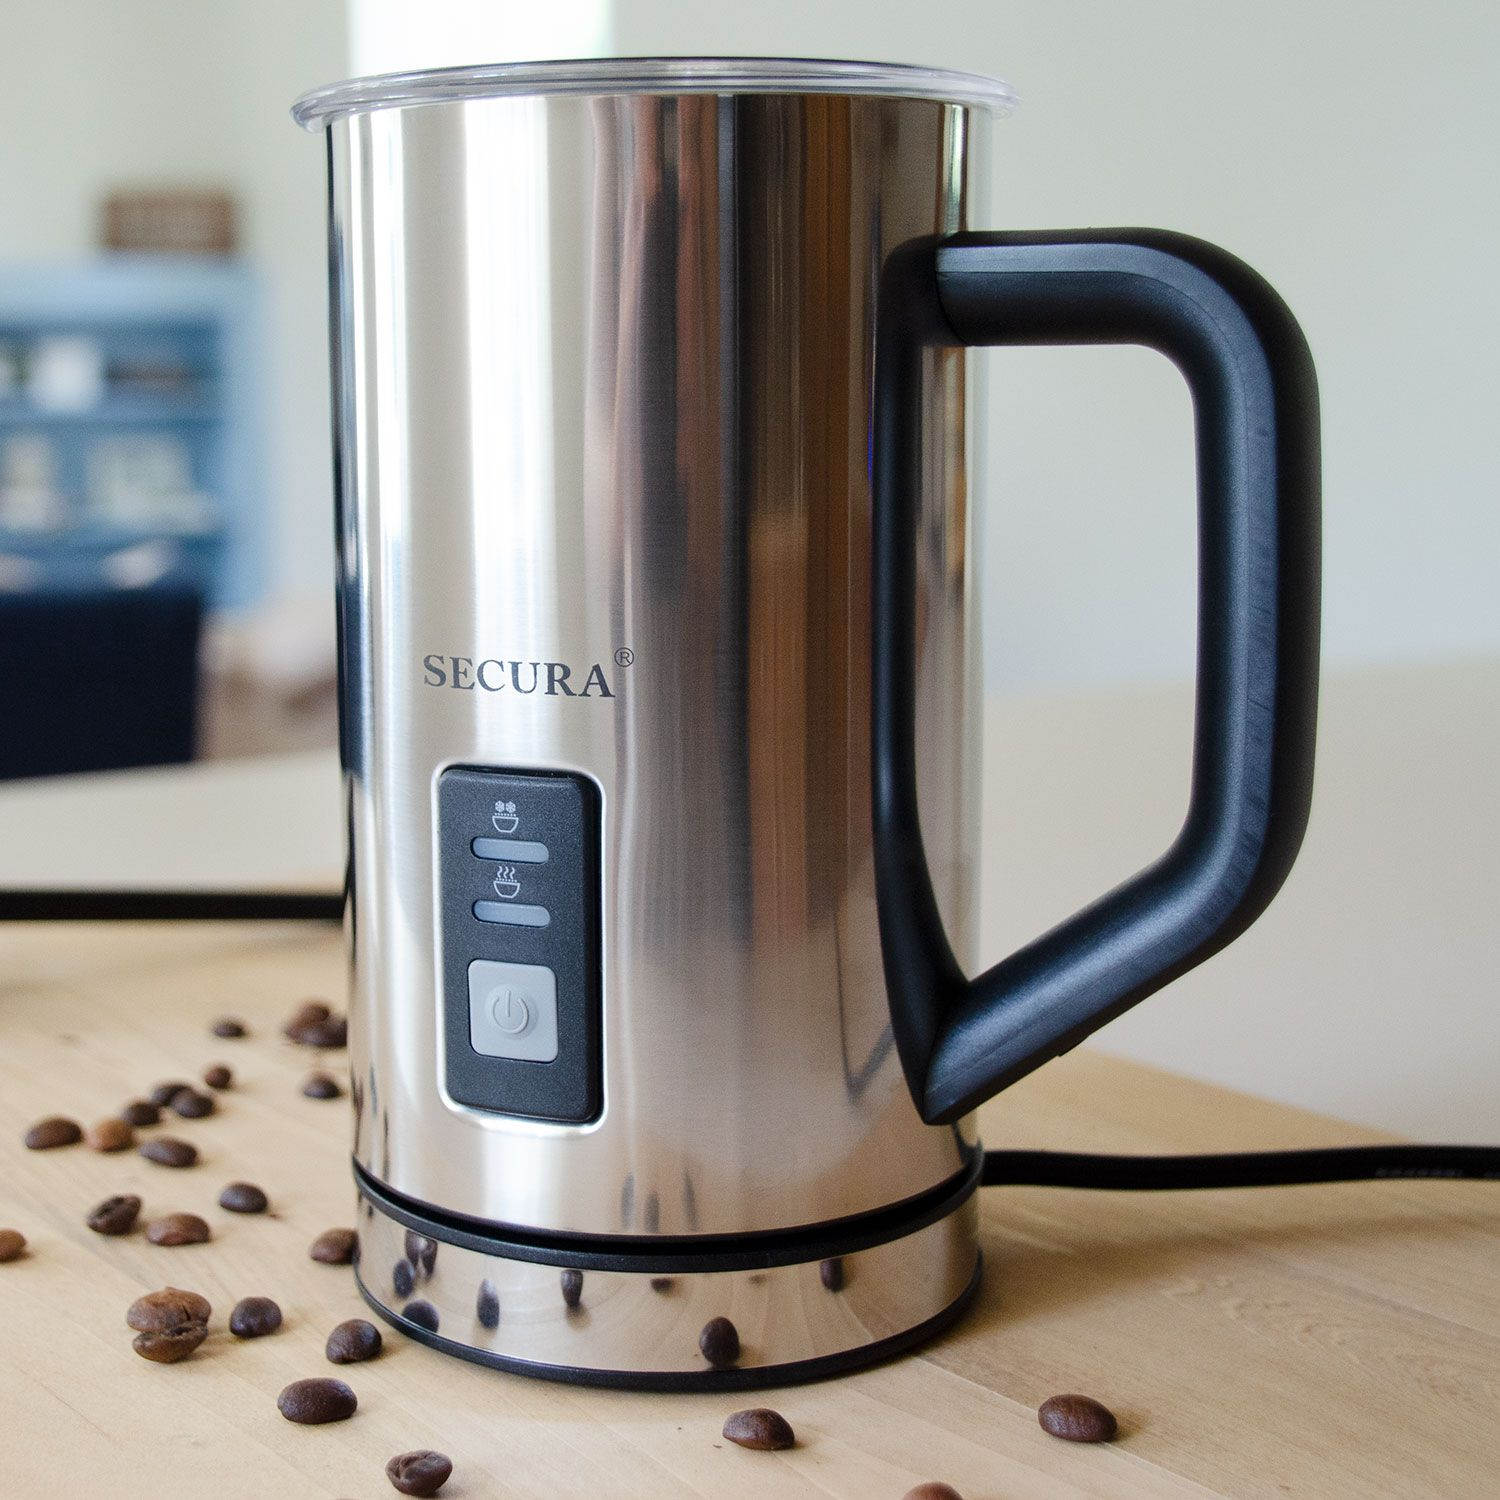 Secura Mmf 015 Milk Frother Review